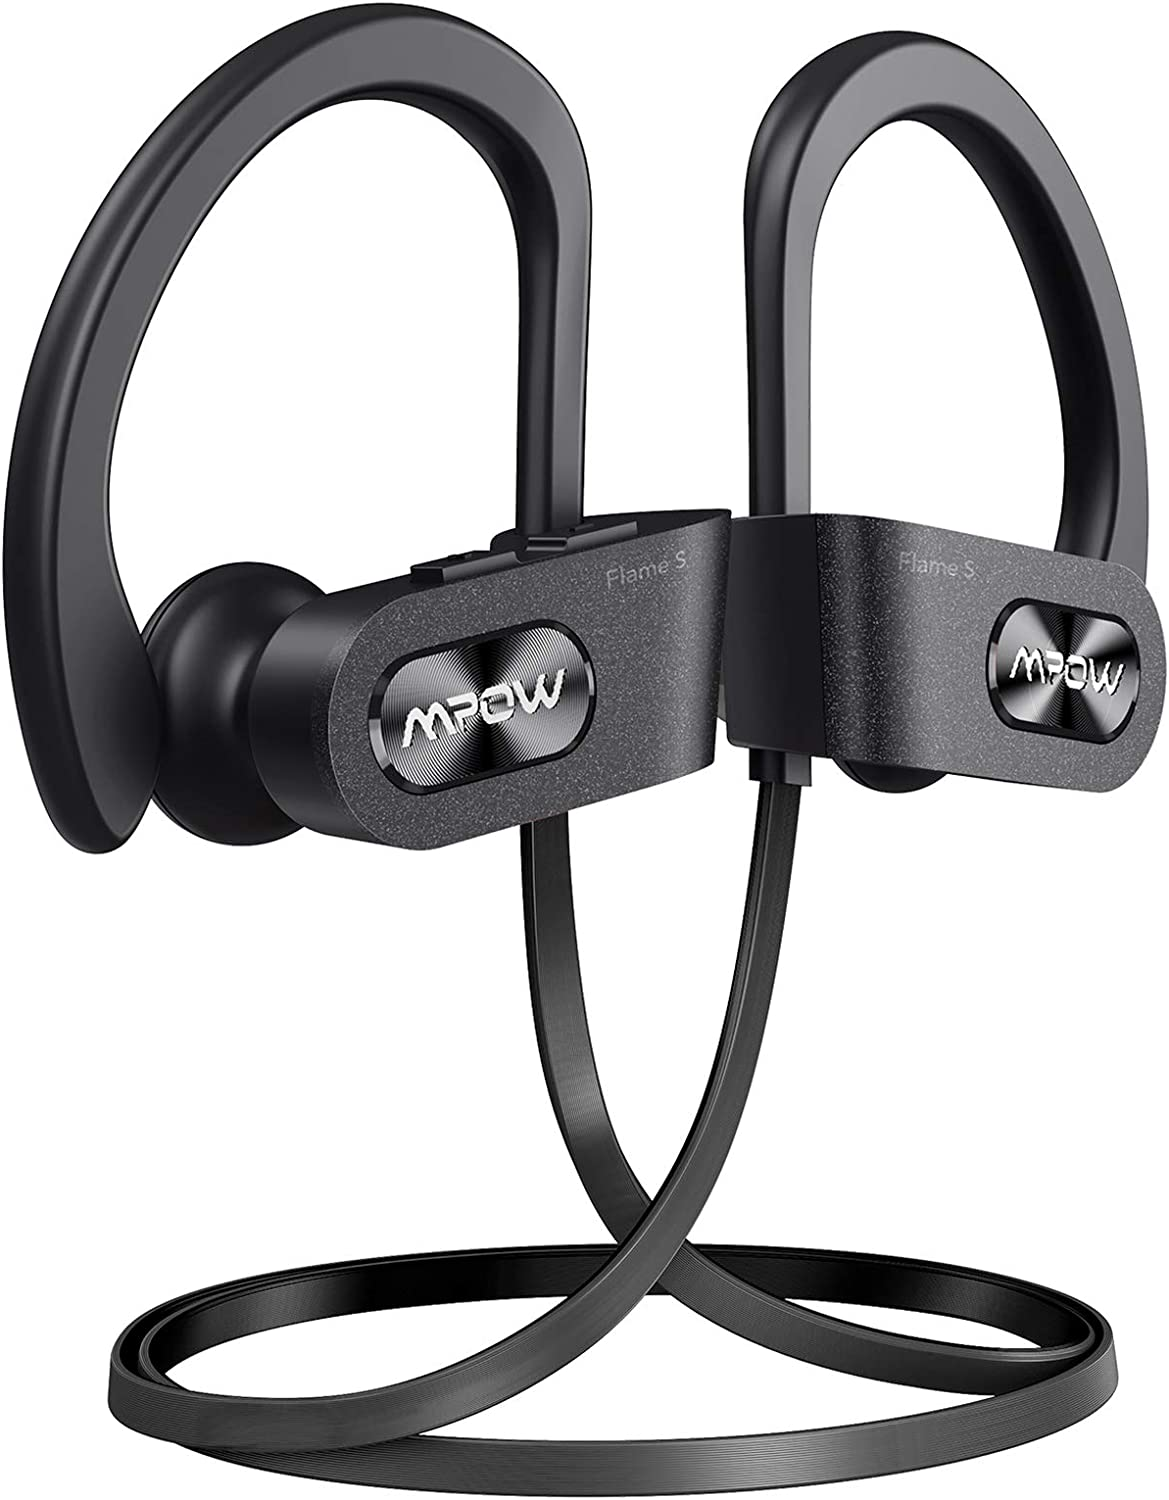 Mpow Flame S Bluetooth Headphones Sports, aptX-HD Bass+ Loud Sound, Bluetooth 5.0 Sport Headphones Running Earbuds W/12H Playtime, IPX7 Waterproof, cVc8.0 Noise Cancelling Mic W/Carrying Case, Black